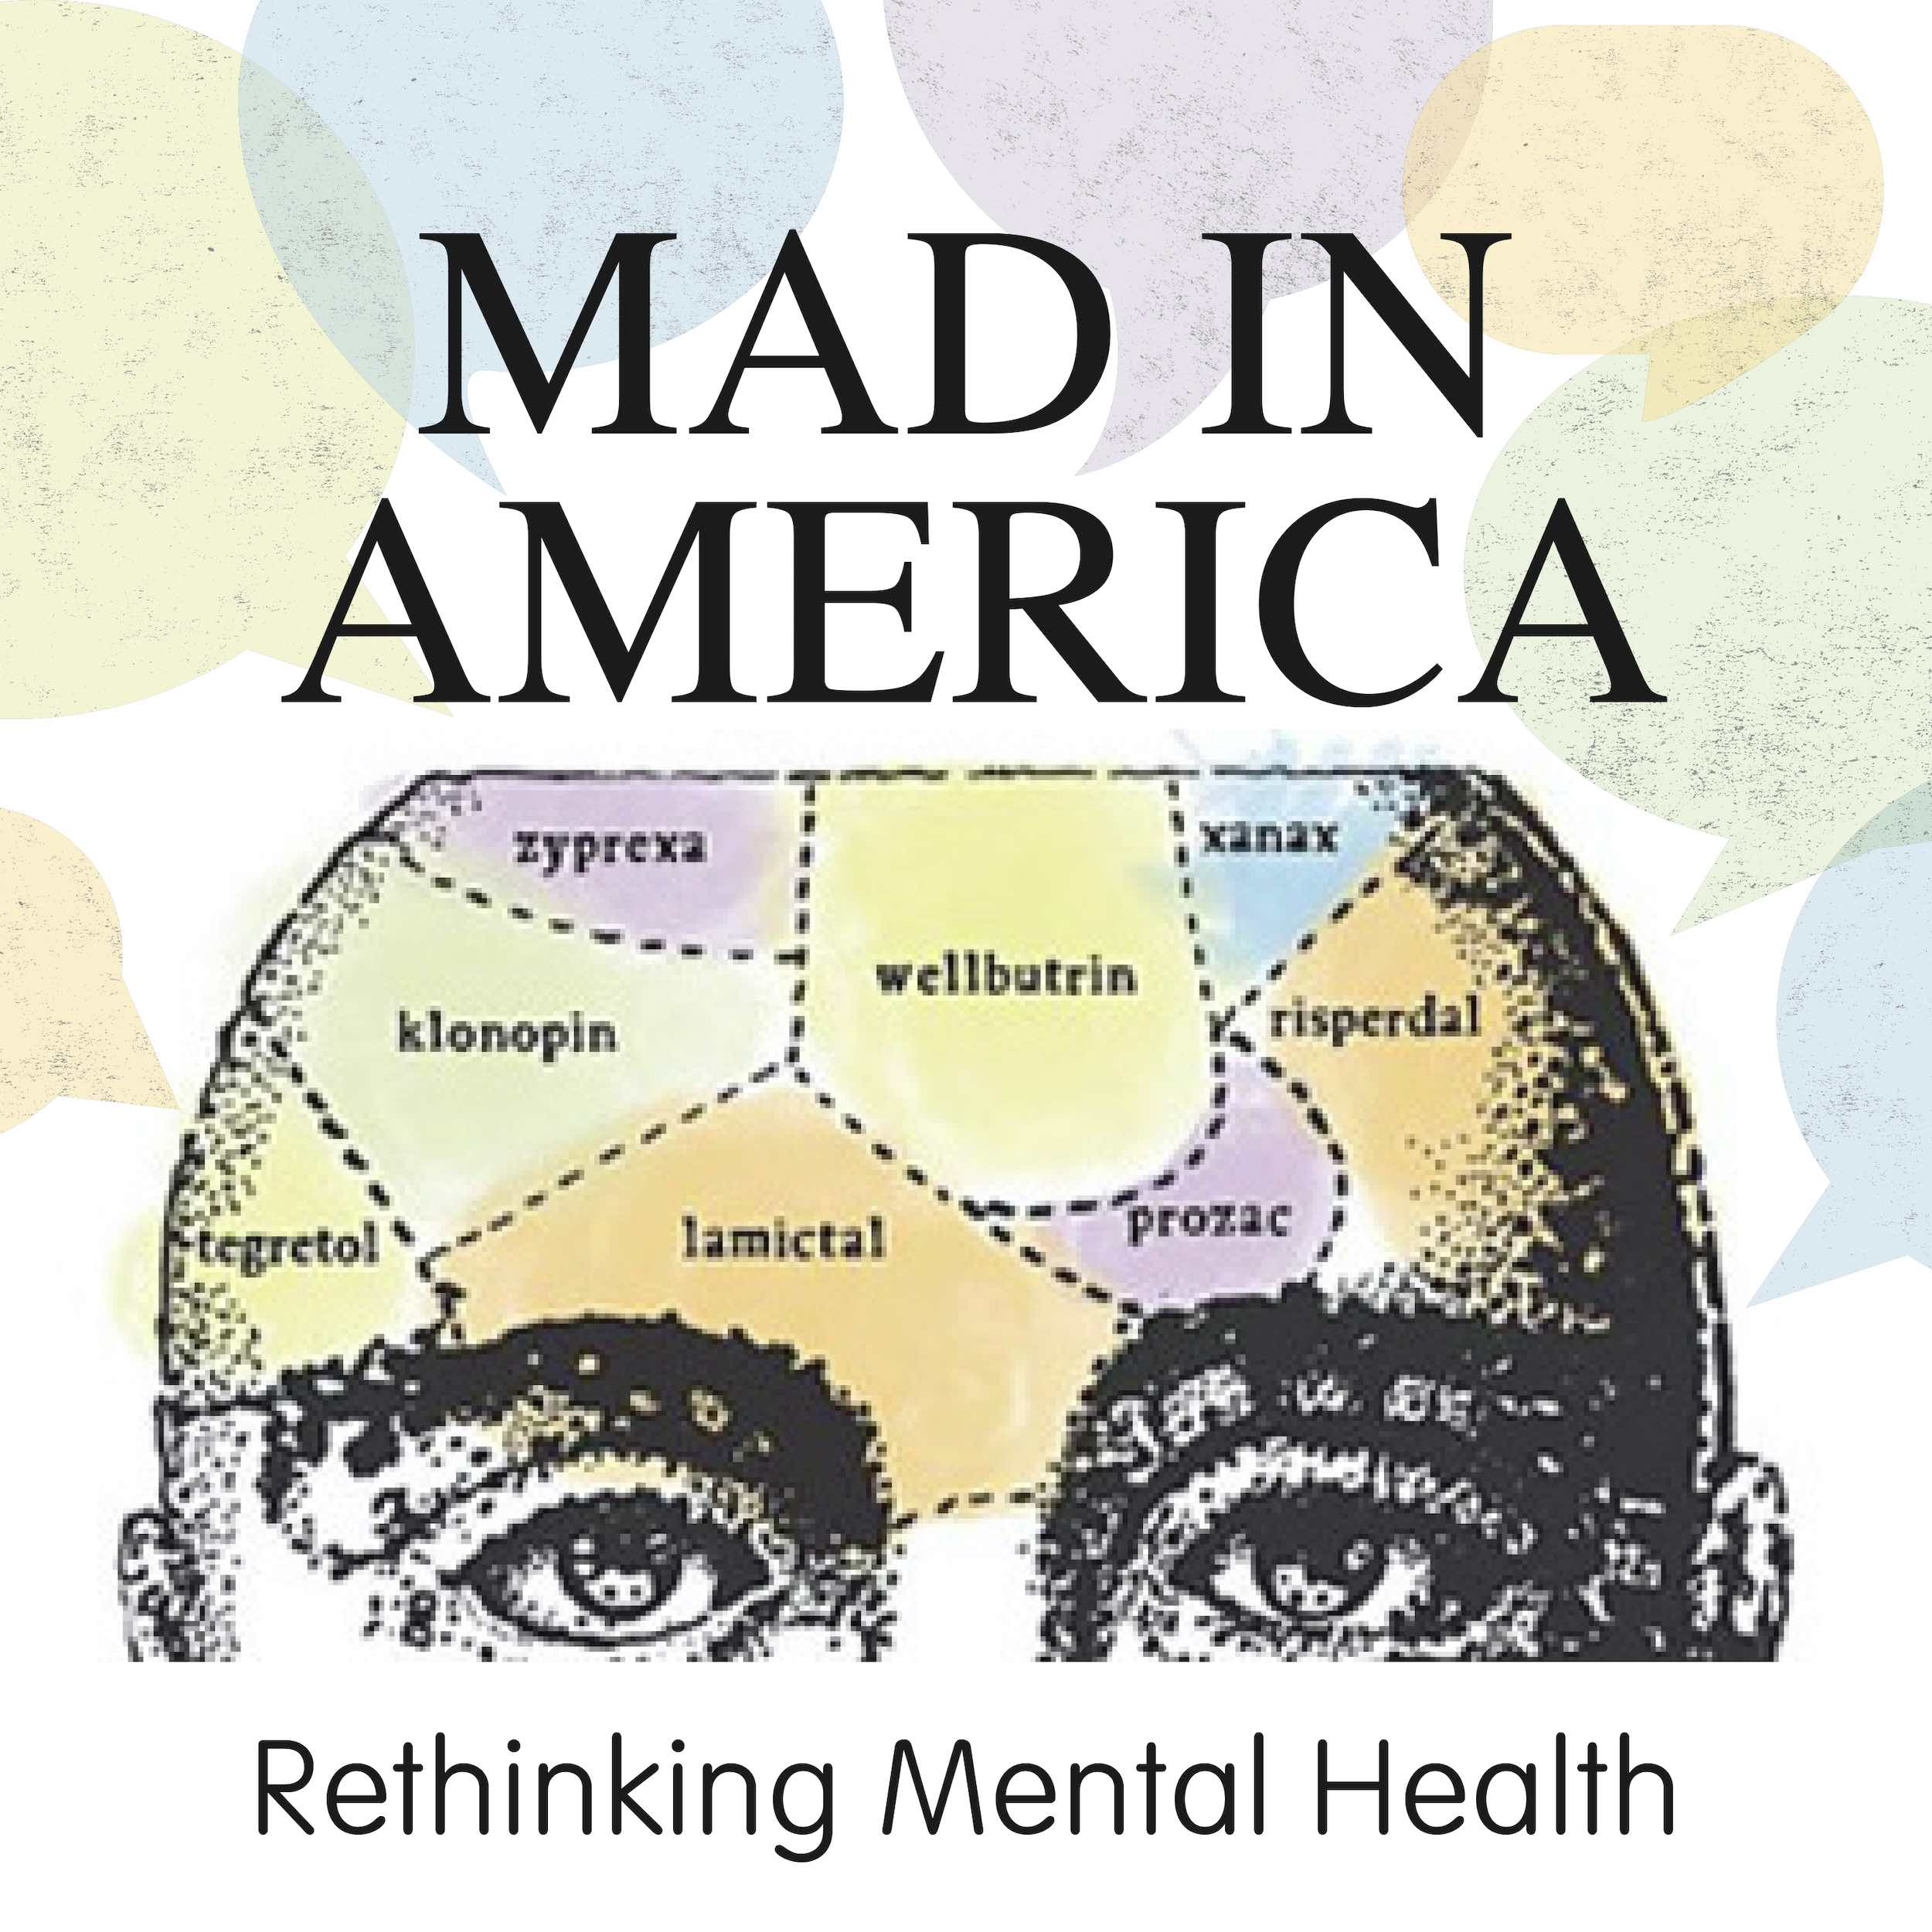 Mad in America: Rethinking Mental Health - MIA Town Hall 1 - Are We Living in the Most Dialogical Time Ever?